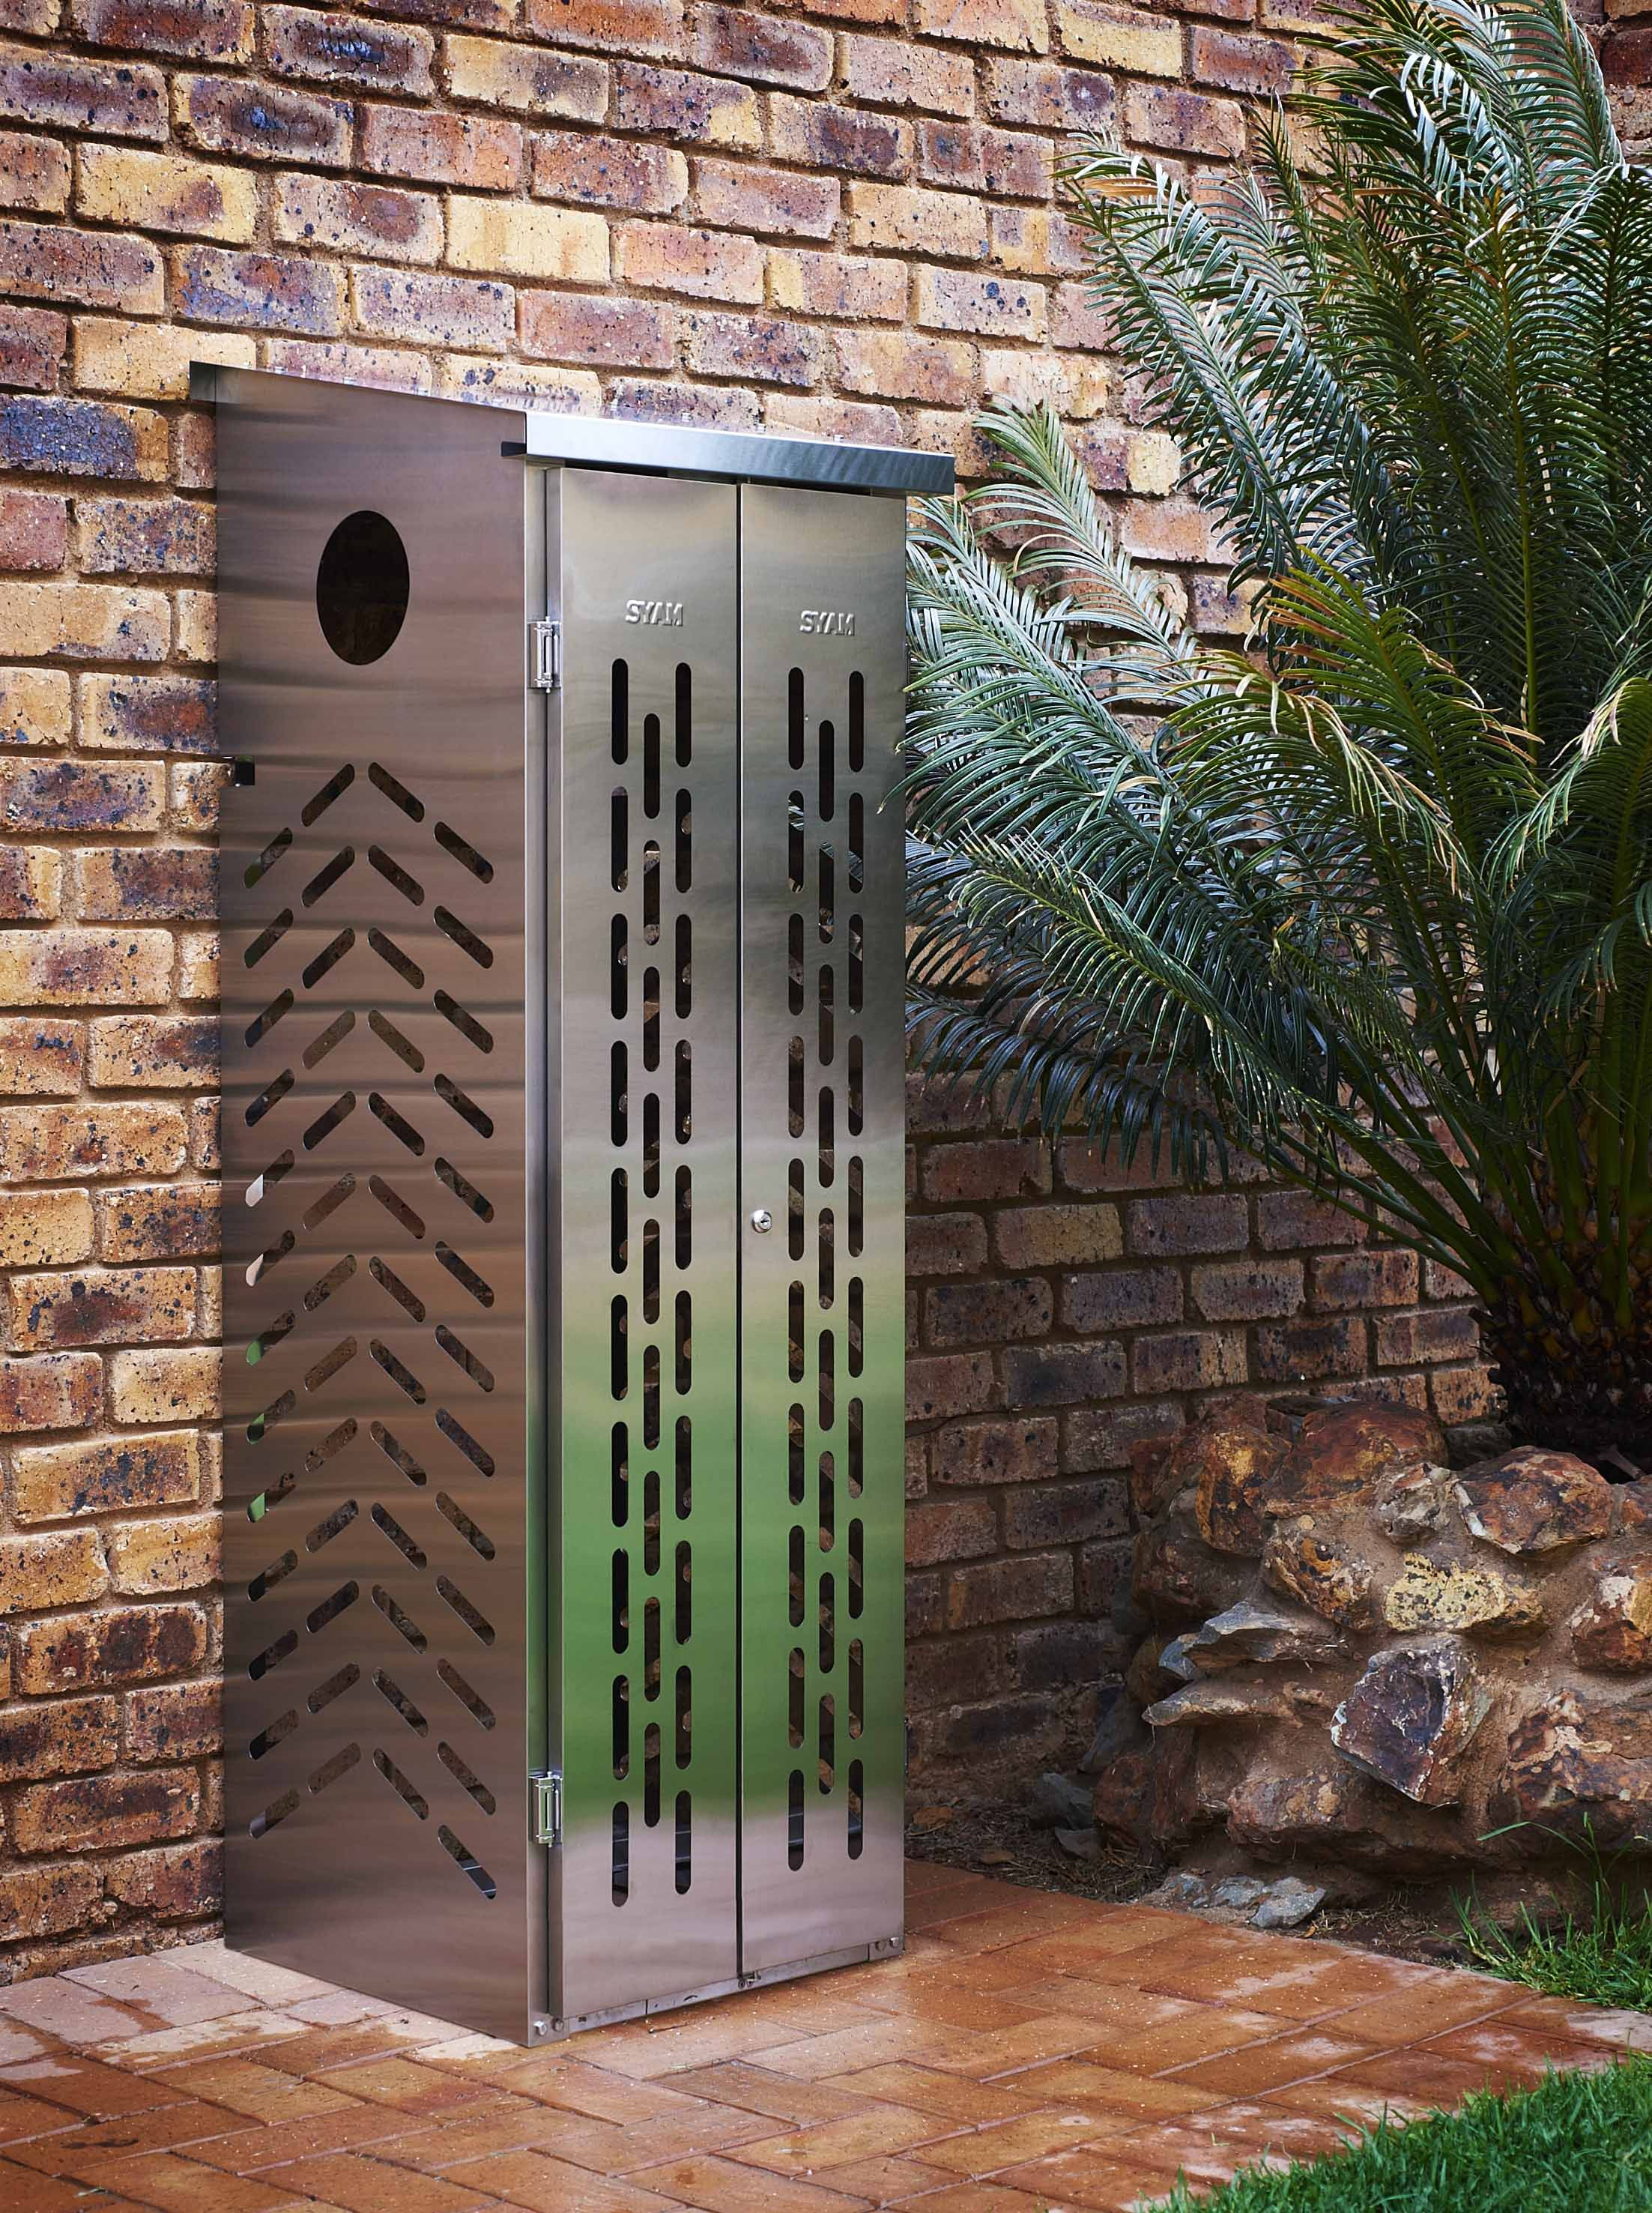 Syam Gas Cages Are A Fantastic Way To Store Your Gas